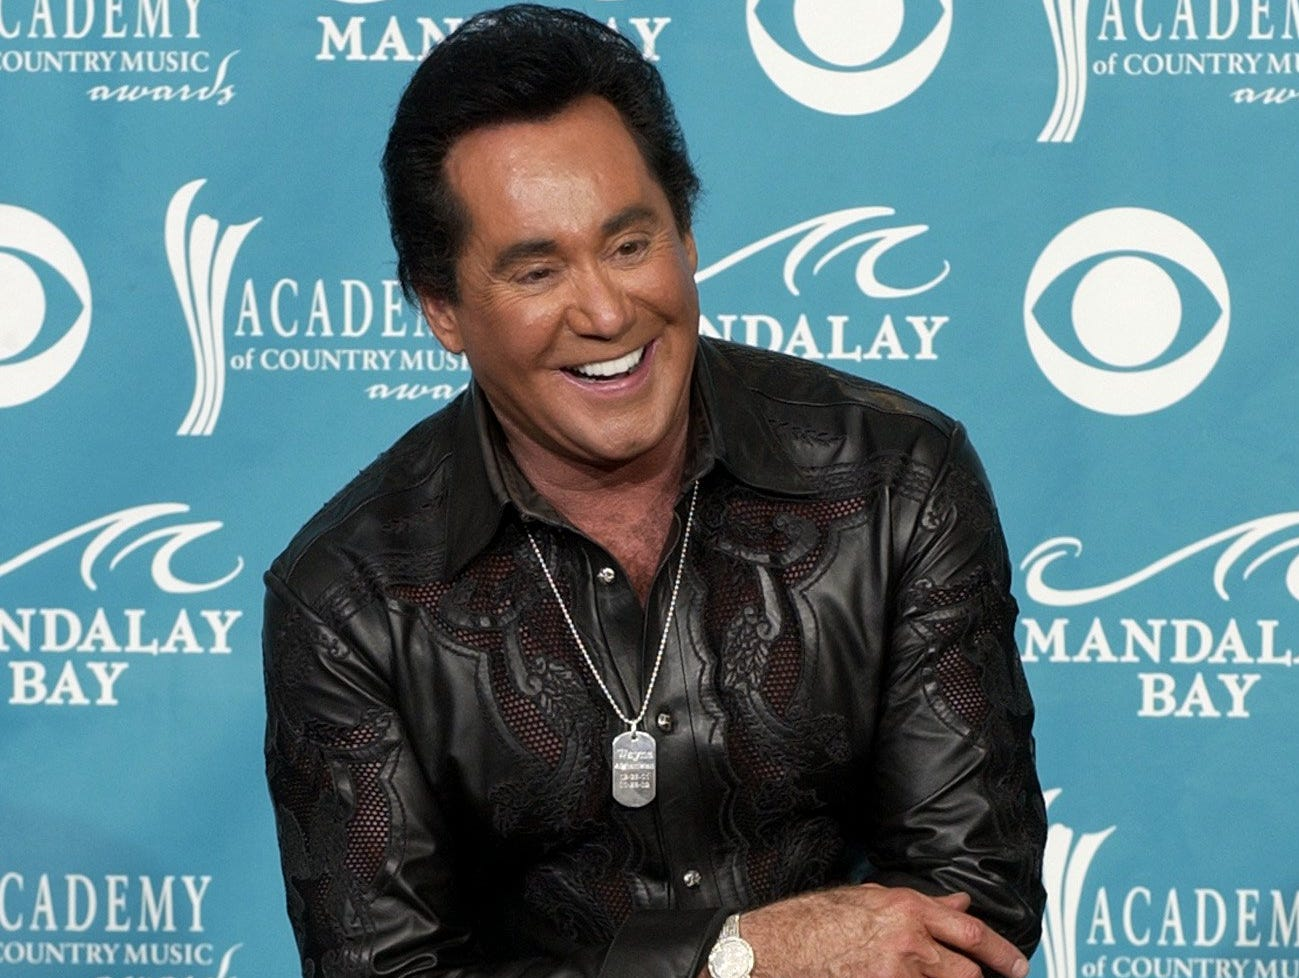 Wayne Newton attends the 38th annual Academy of Country Music Awards on May 21, 2003, in Las Vegas.